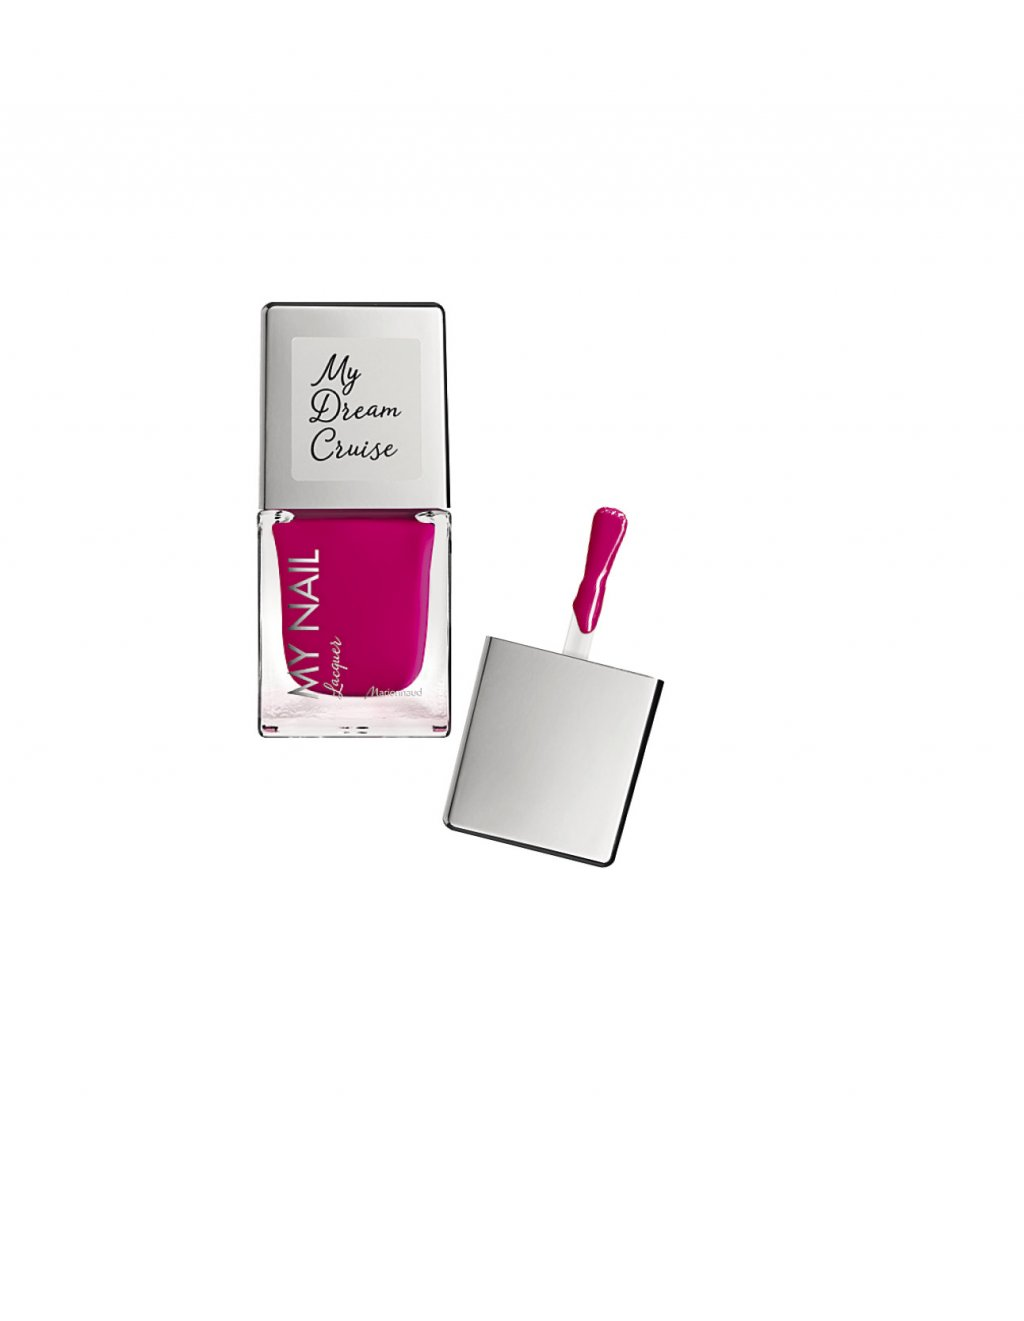 My Nail Lacquer, Marionnaud, 149 Kč